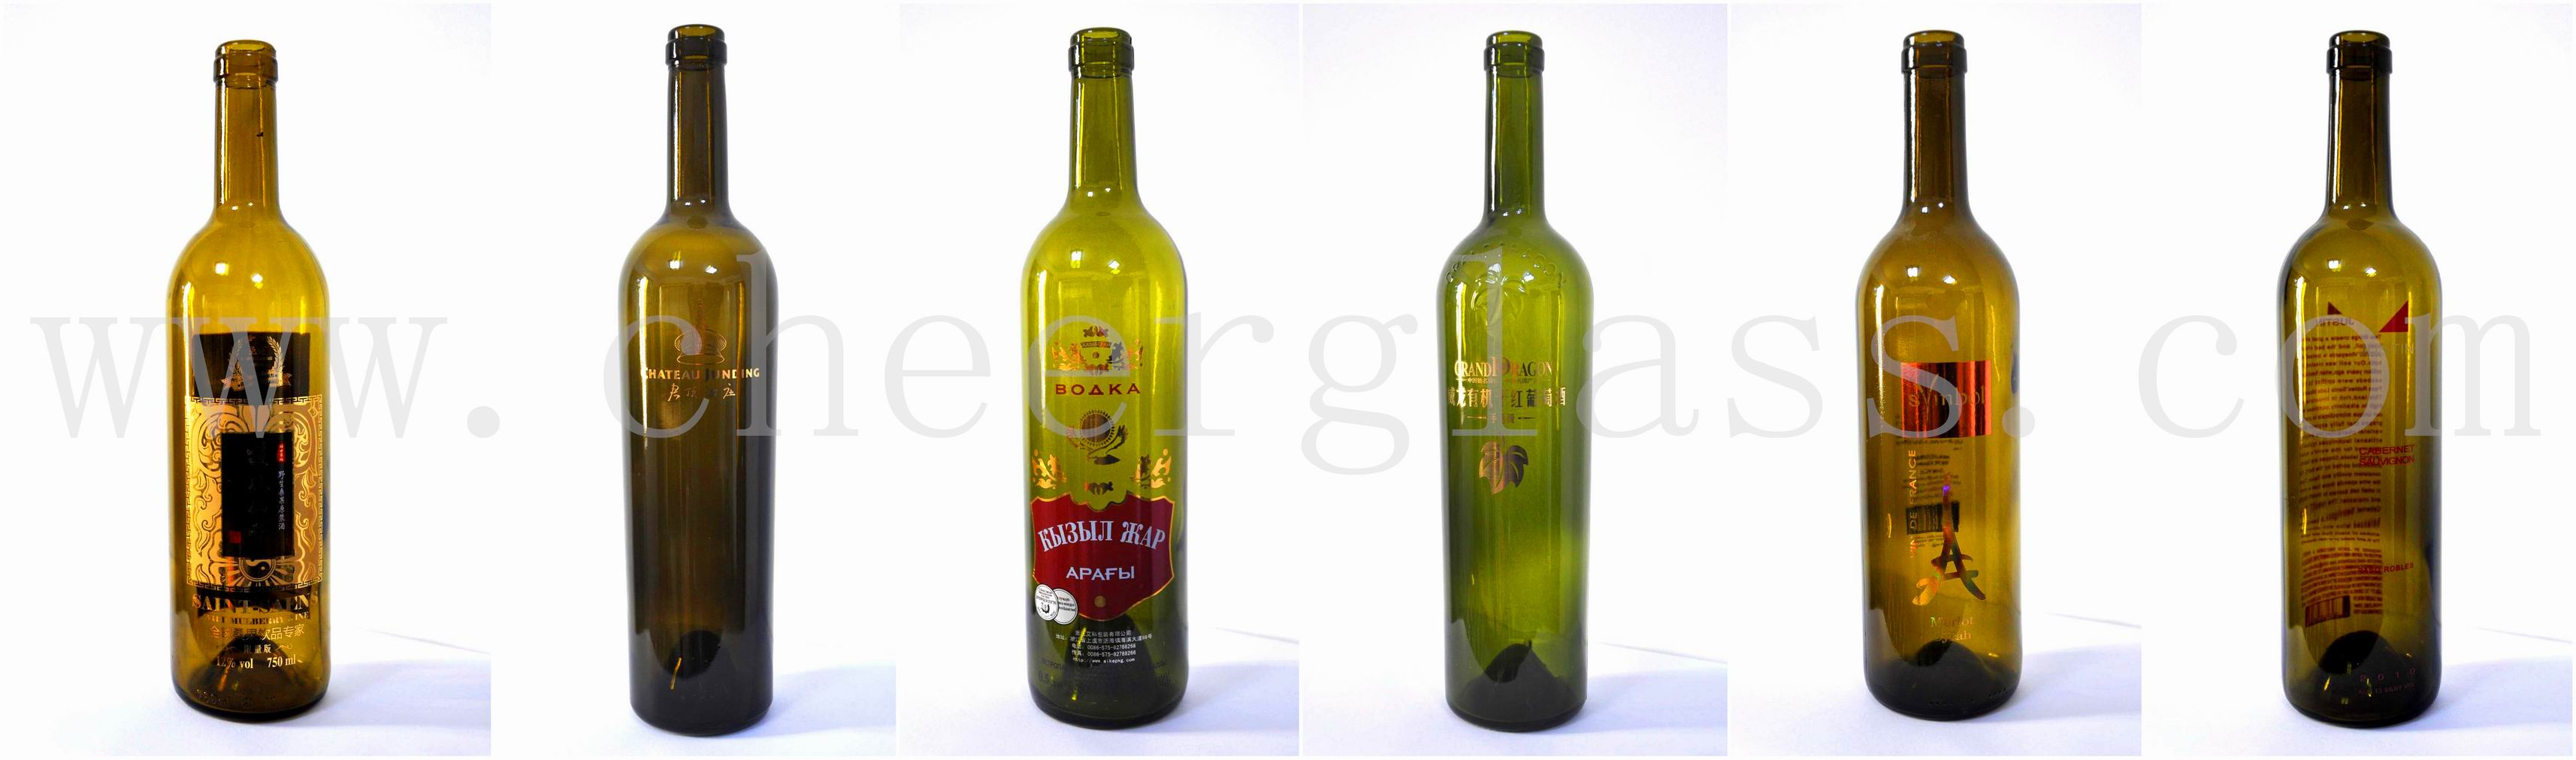 Glass bottle with logo printing